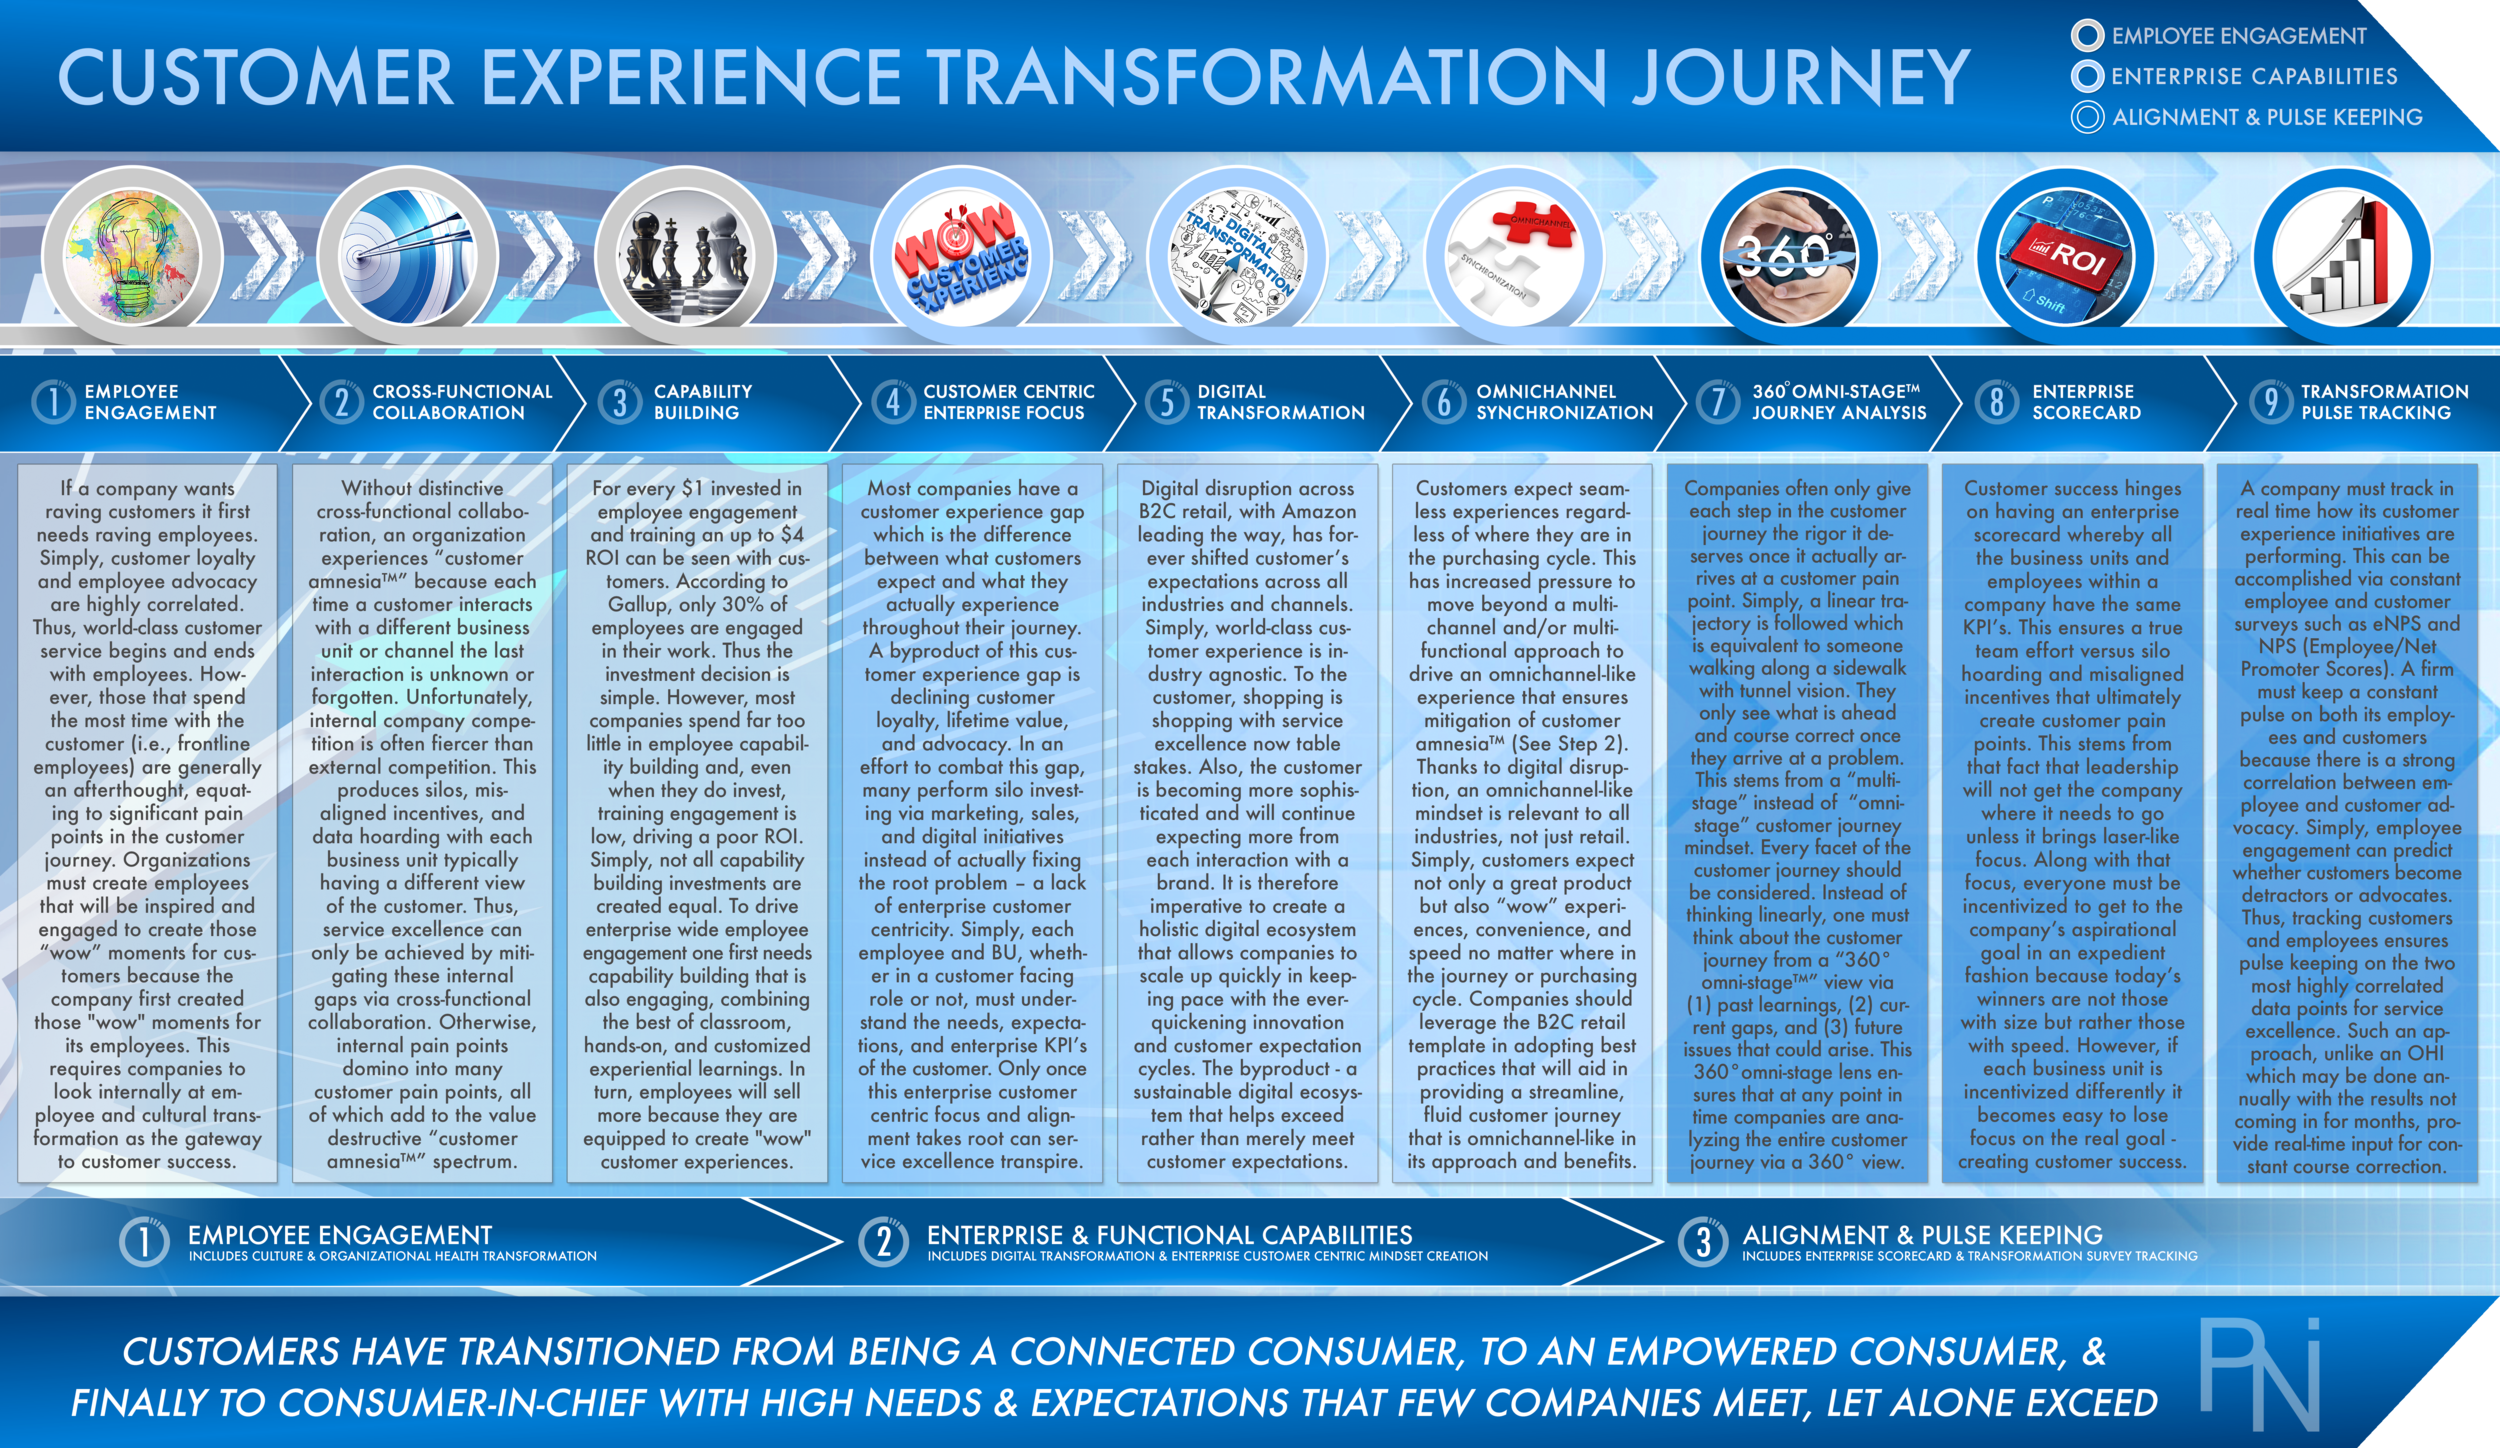 9-STEP CUSTOMER EXPERIENCE JOURNEY  Exhibit 6  (Click to Enlarge)